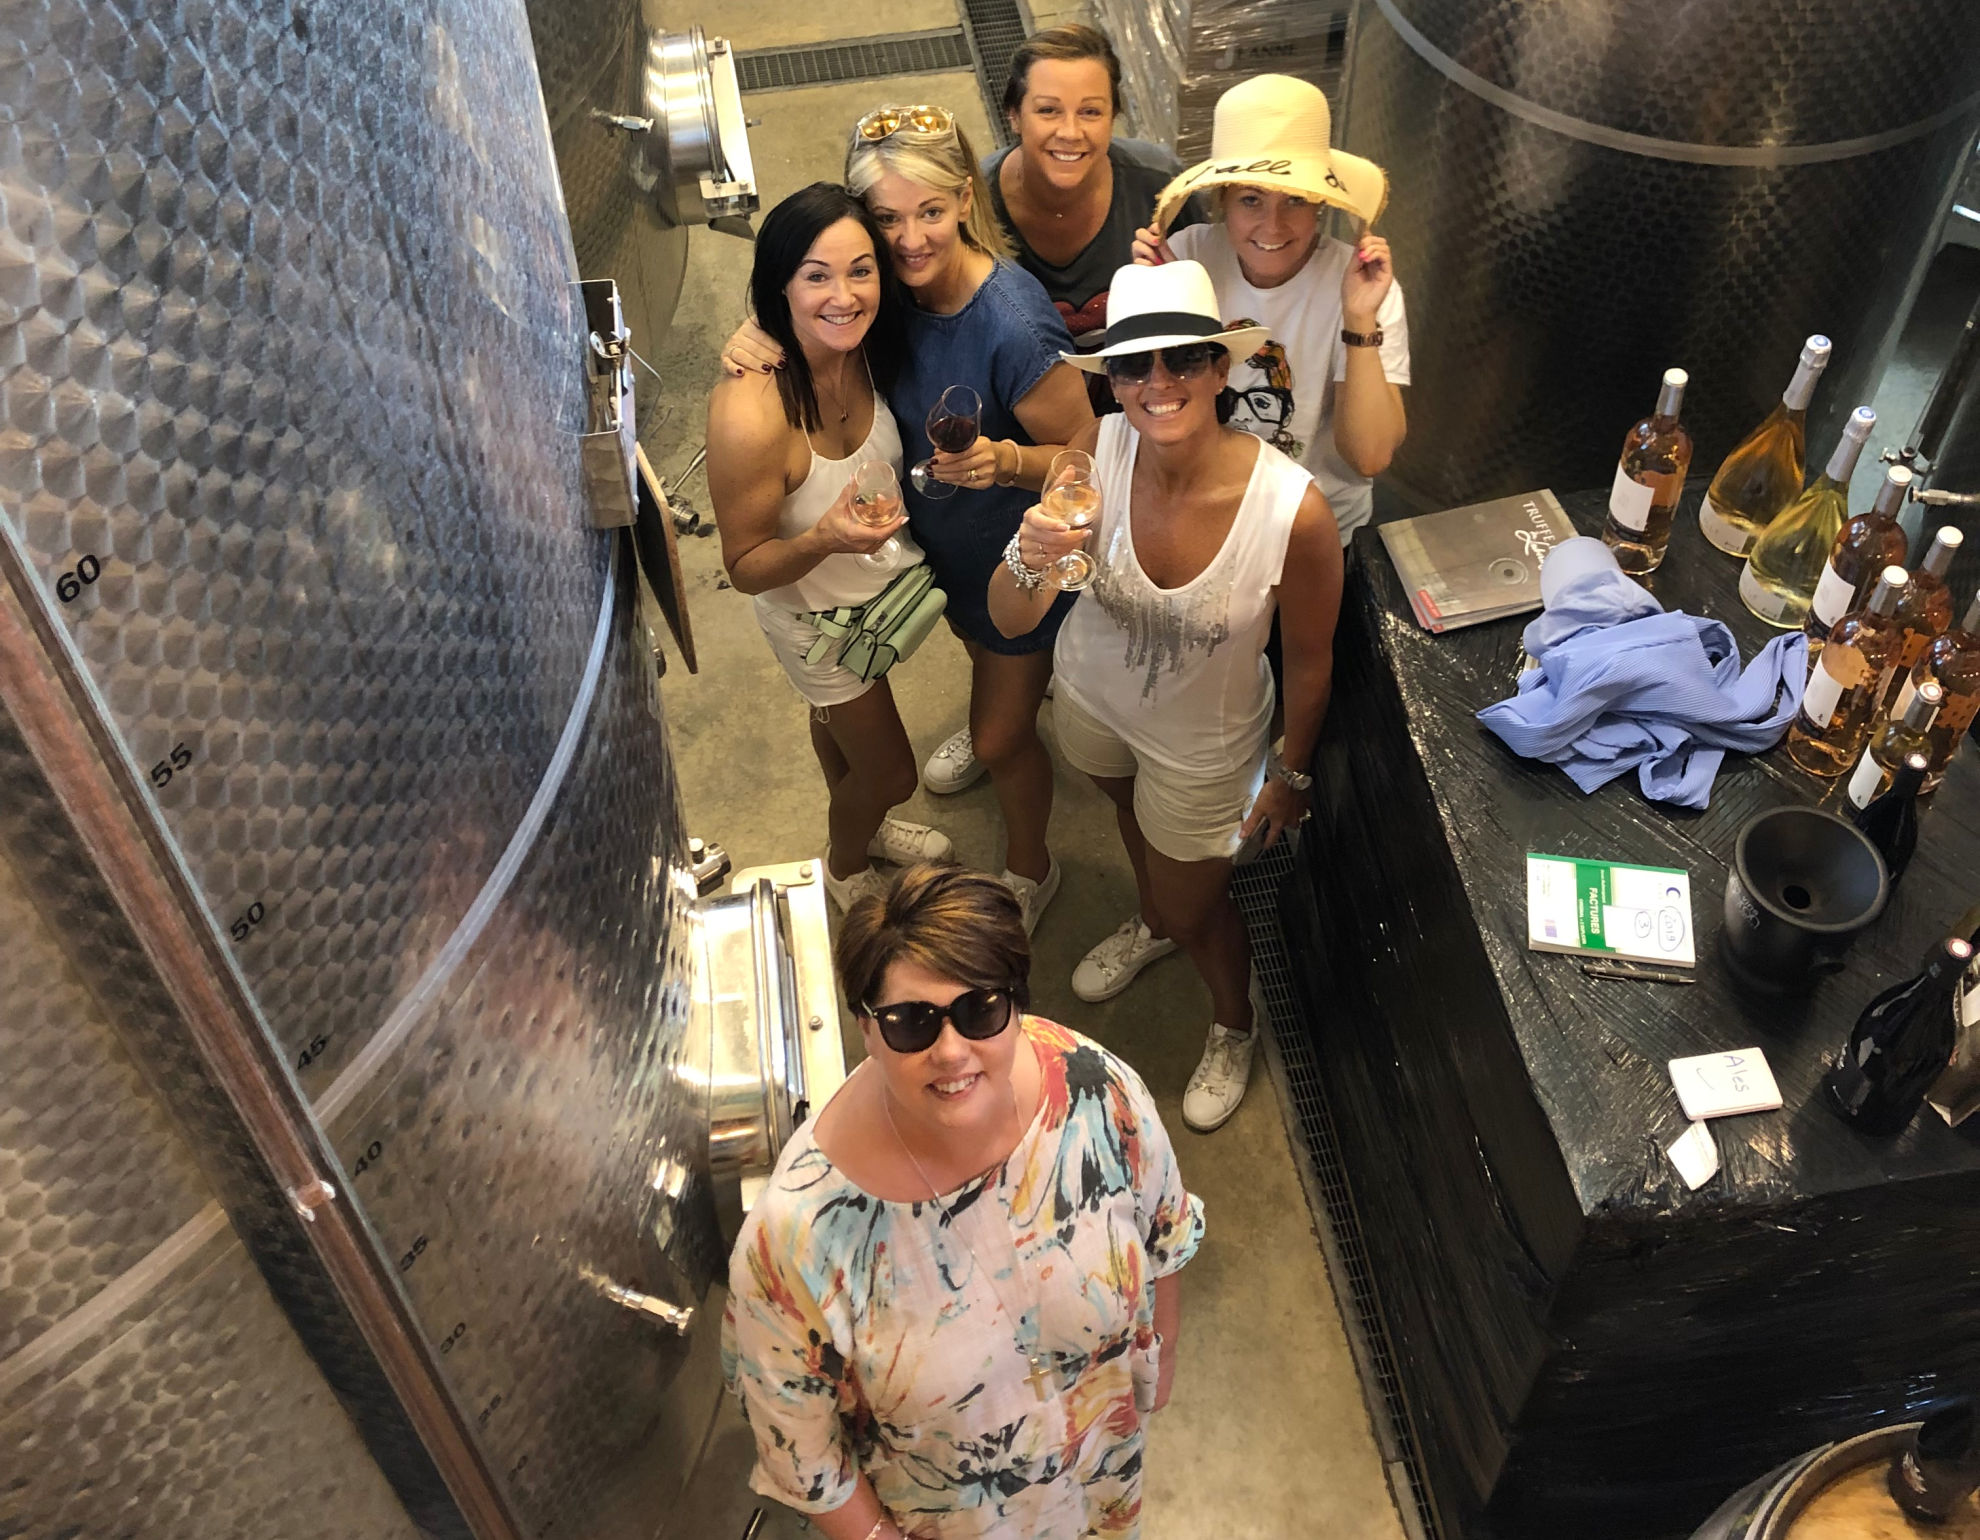 Wine Tasting in the Domaine Des Jeanne Cave